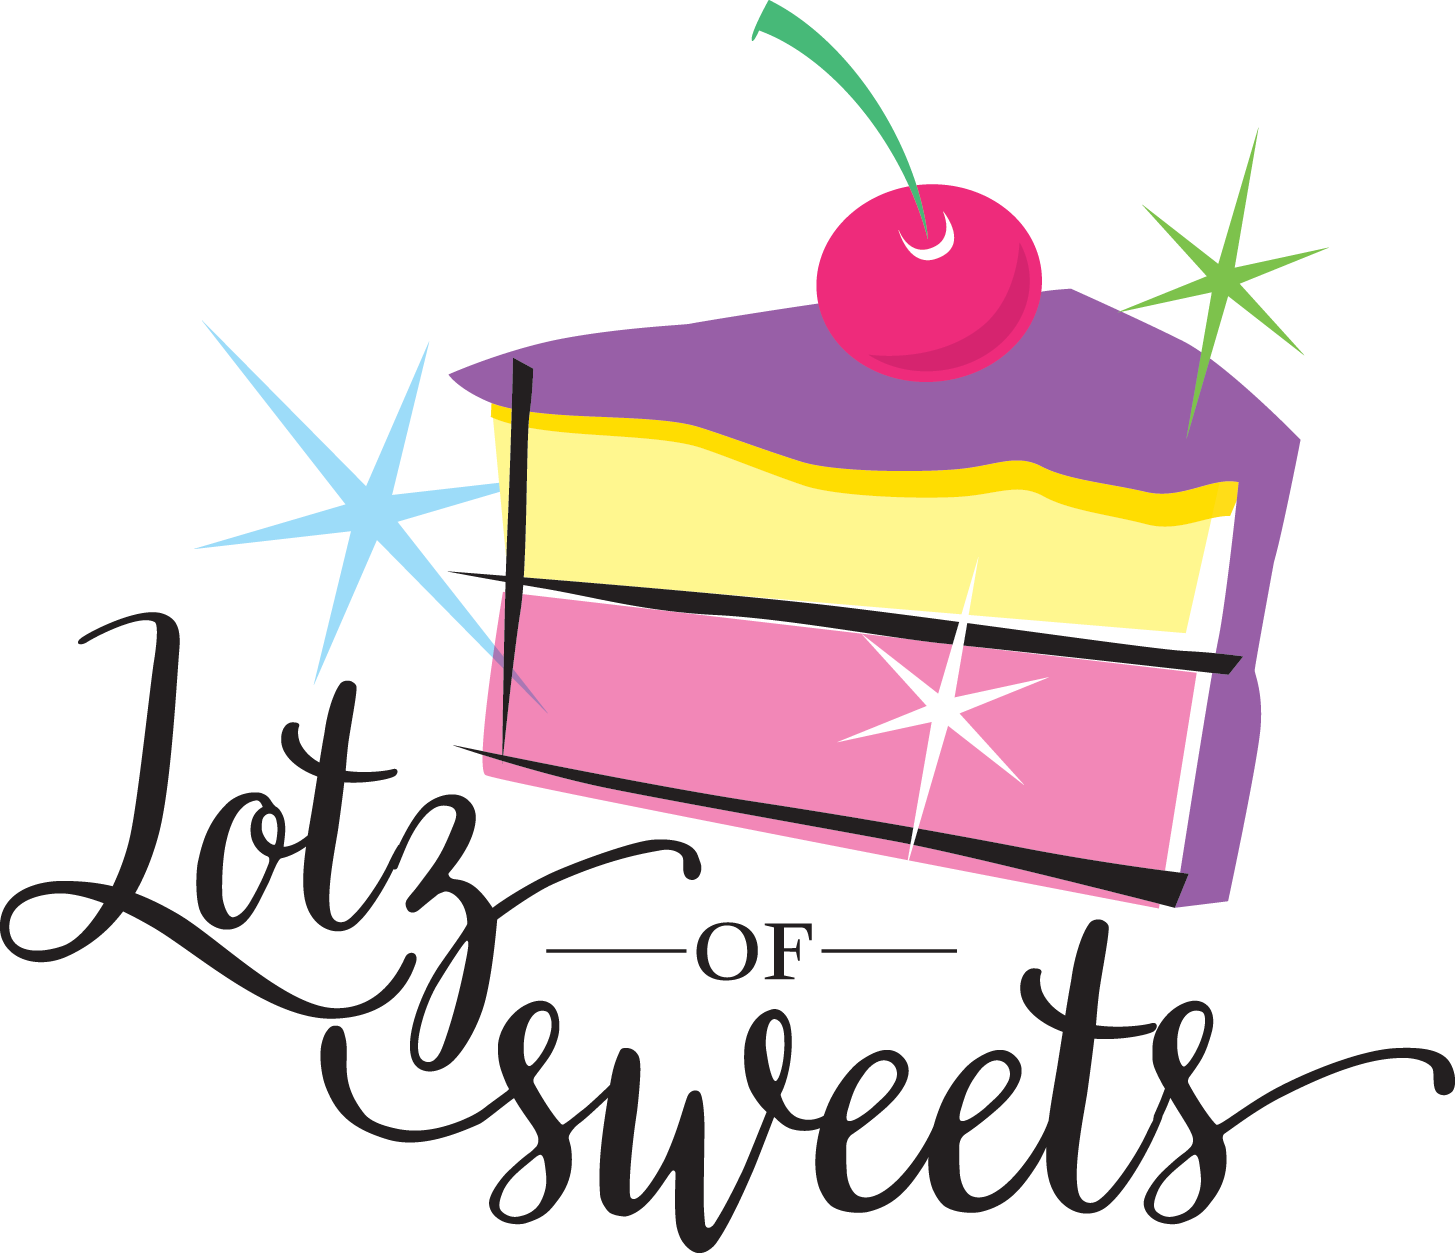 May 18th calendar clipart clip transparent stock Drinks and Dessert Night at River Watch on May 18th — Lotz of Sweets clip transparent stock